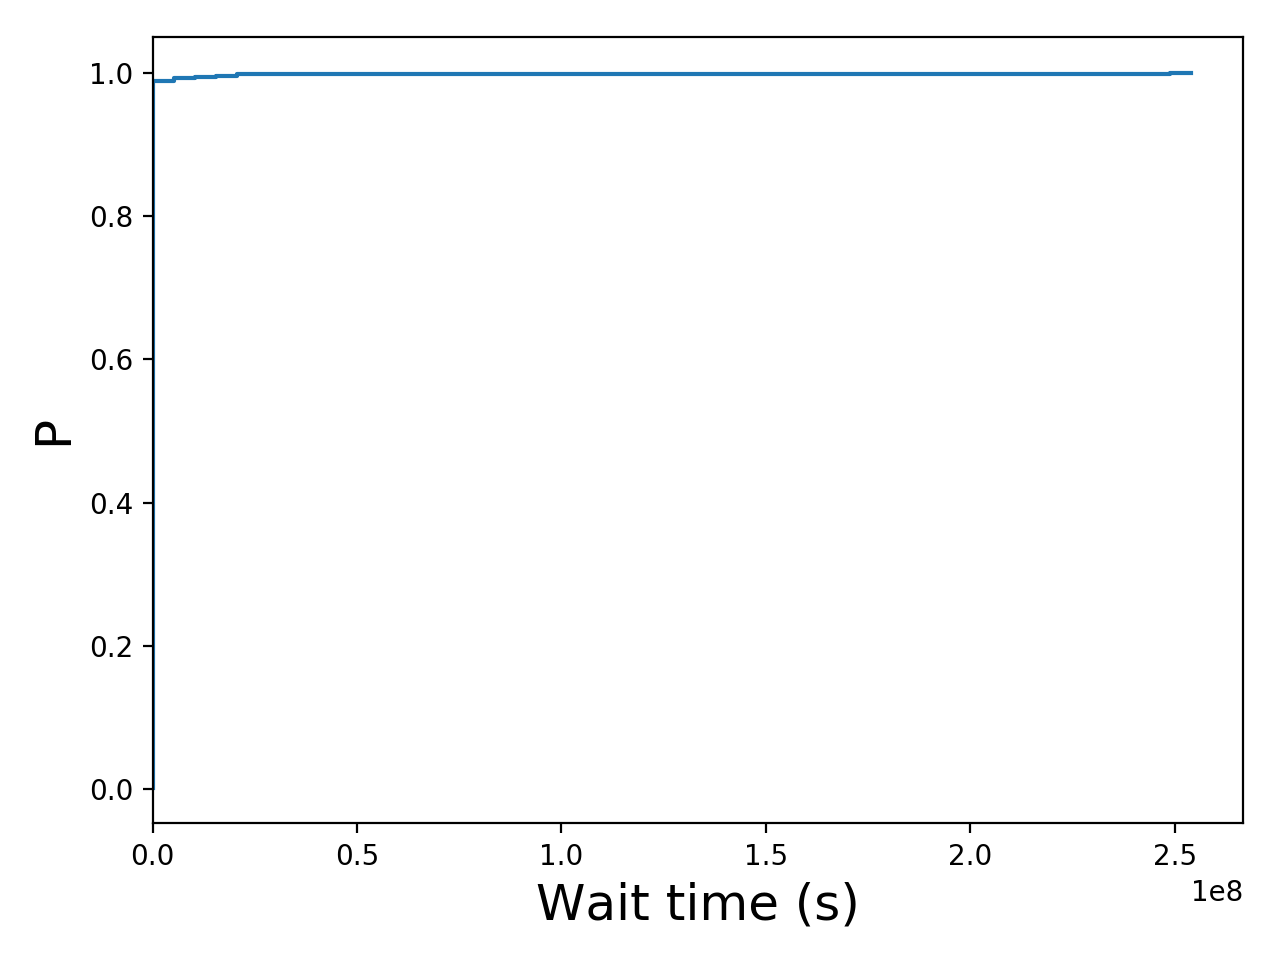 Task wait time CDF graph for the Google trace.